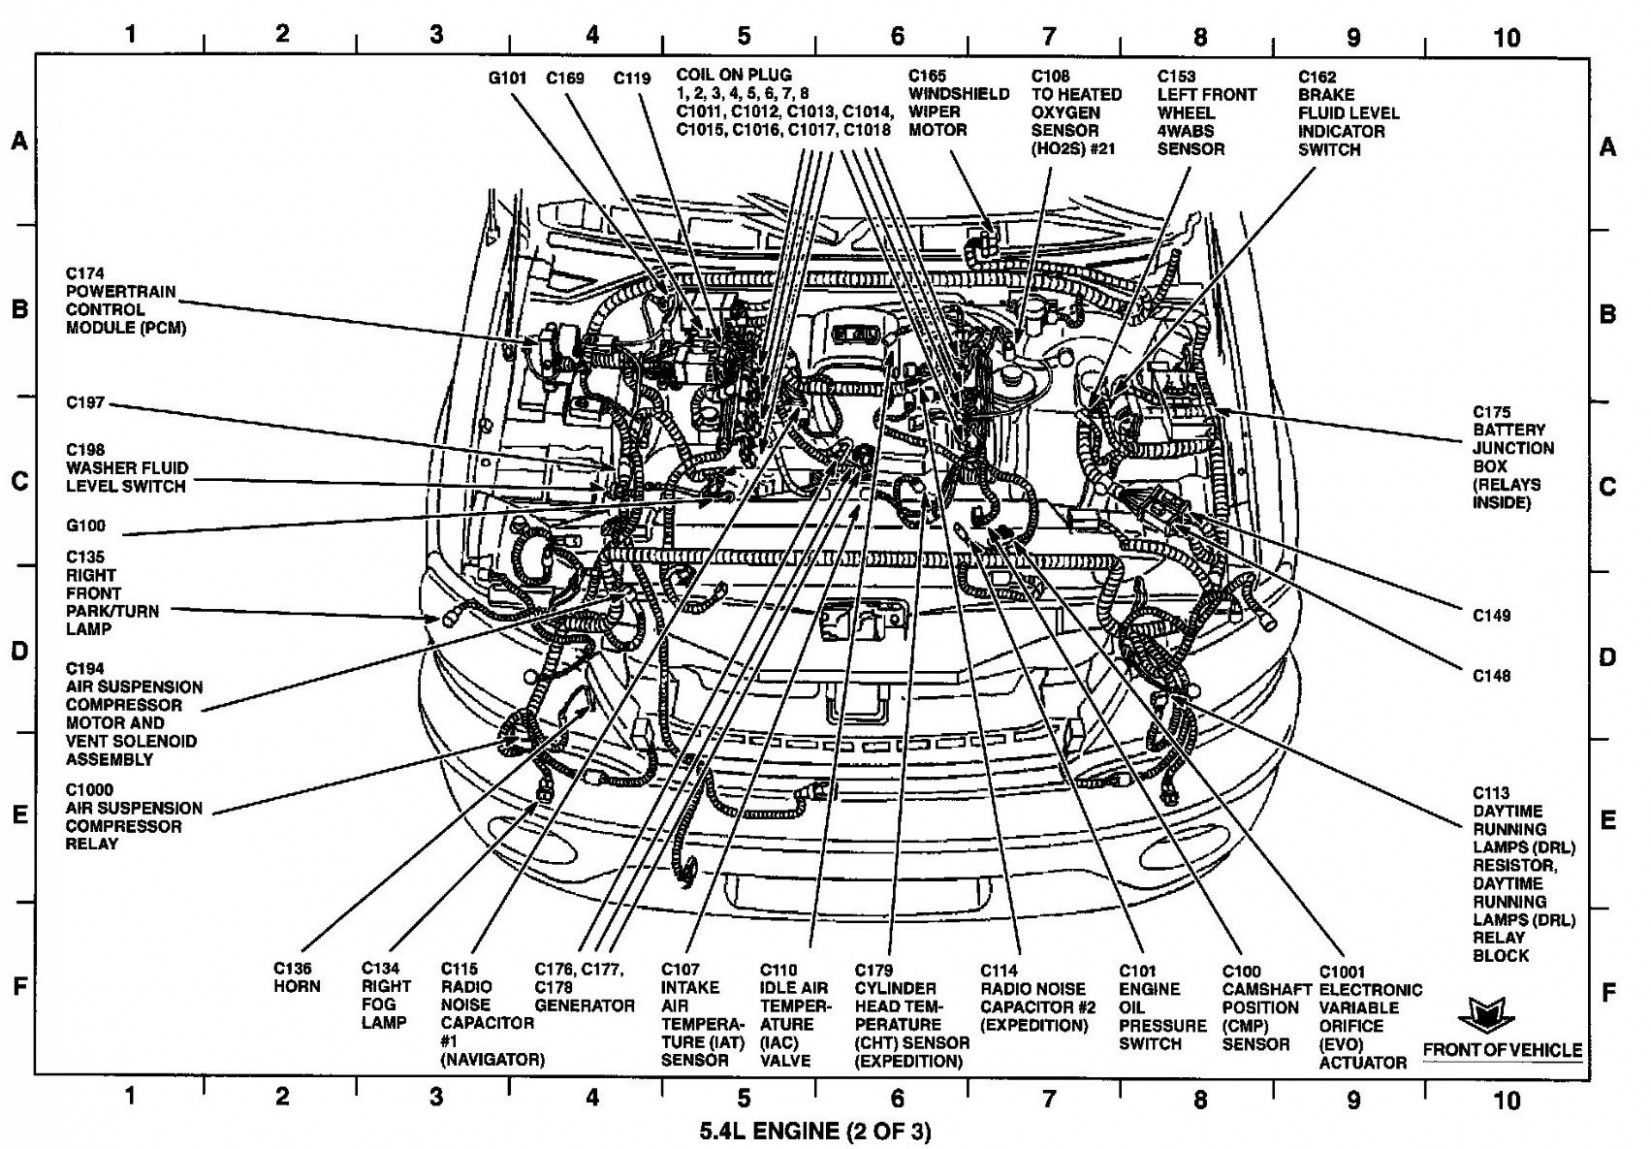 6 Ford Focus Engine Parts Diagram 6 Ford Focus Engine